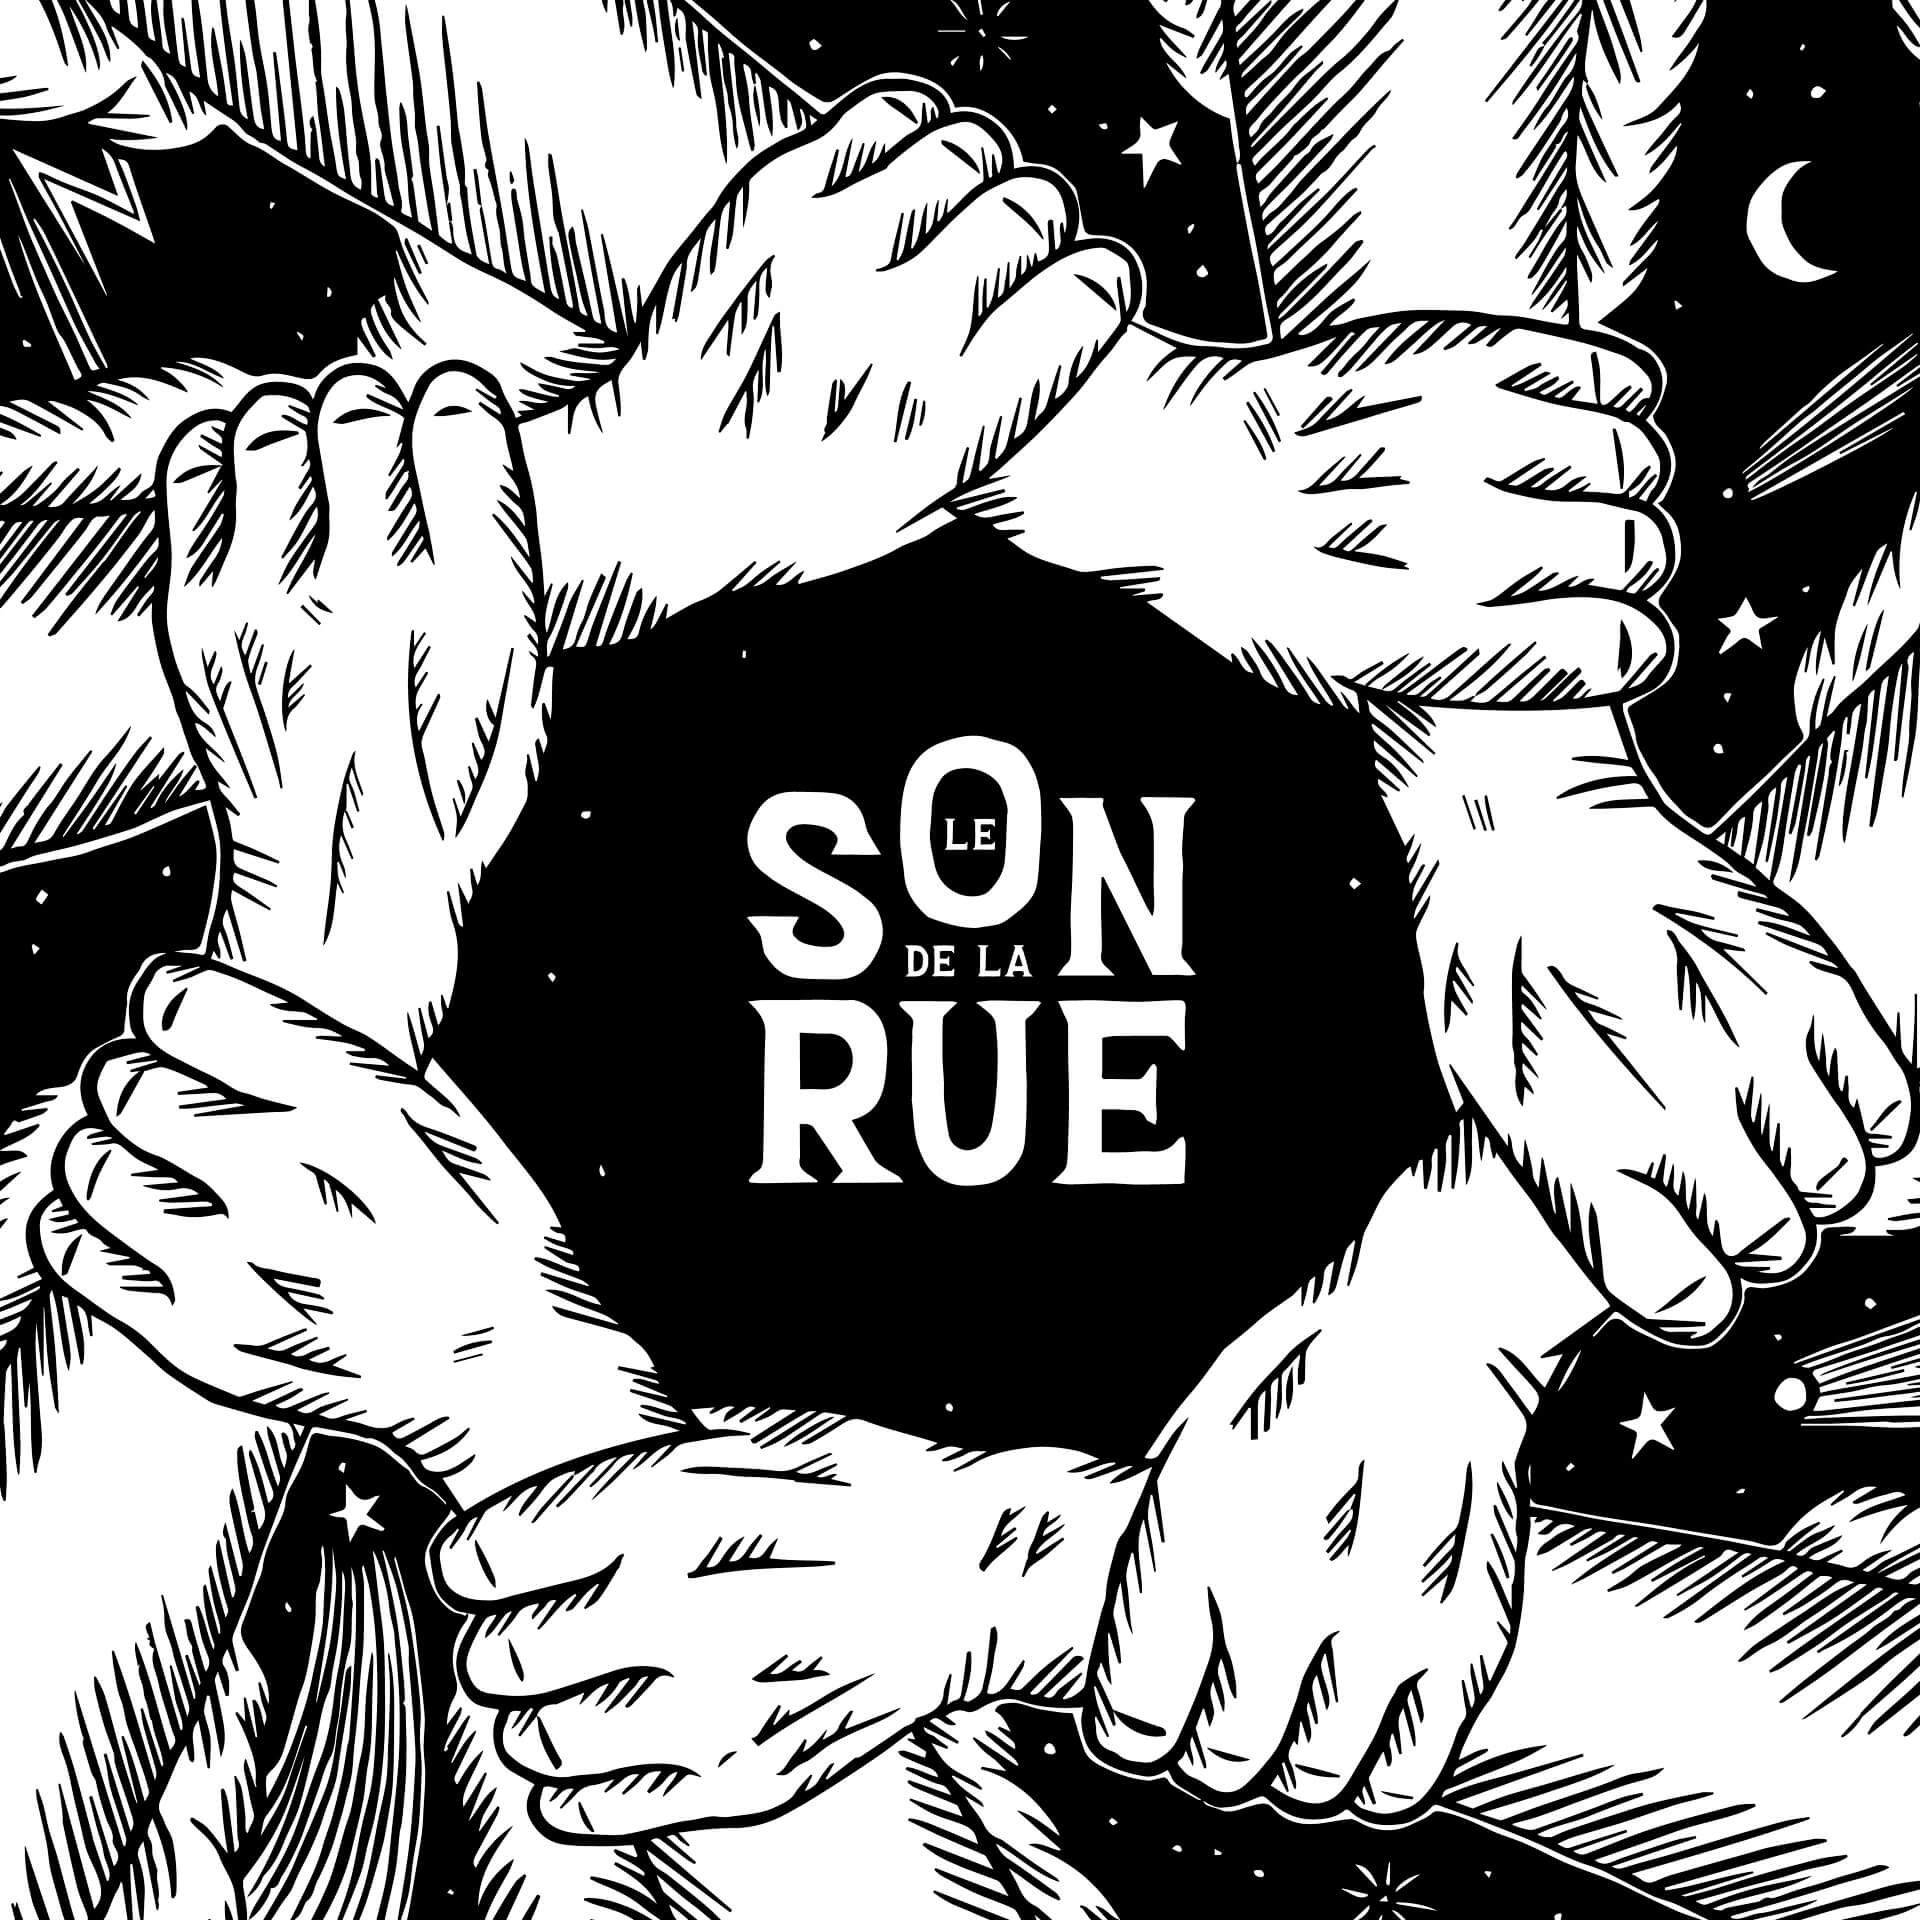 Le Son de la Rue by Various Artists